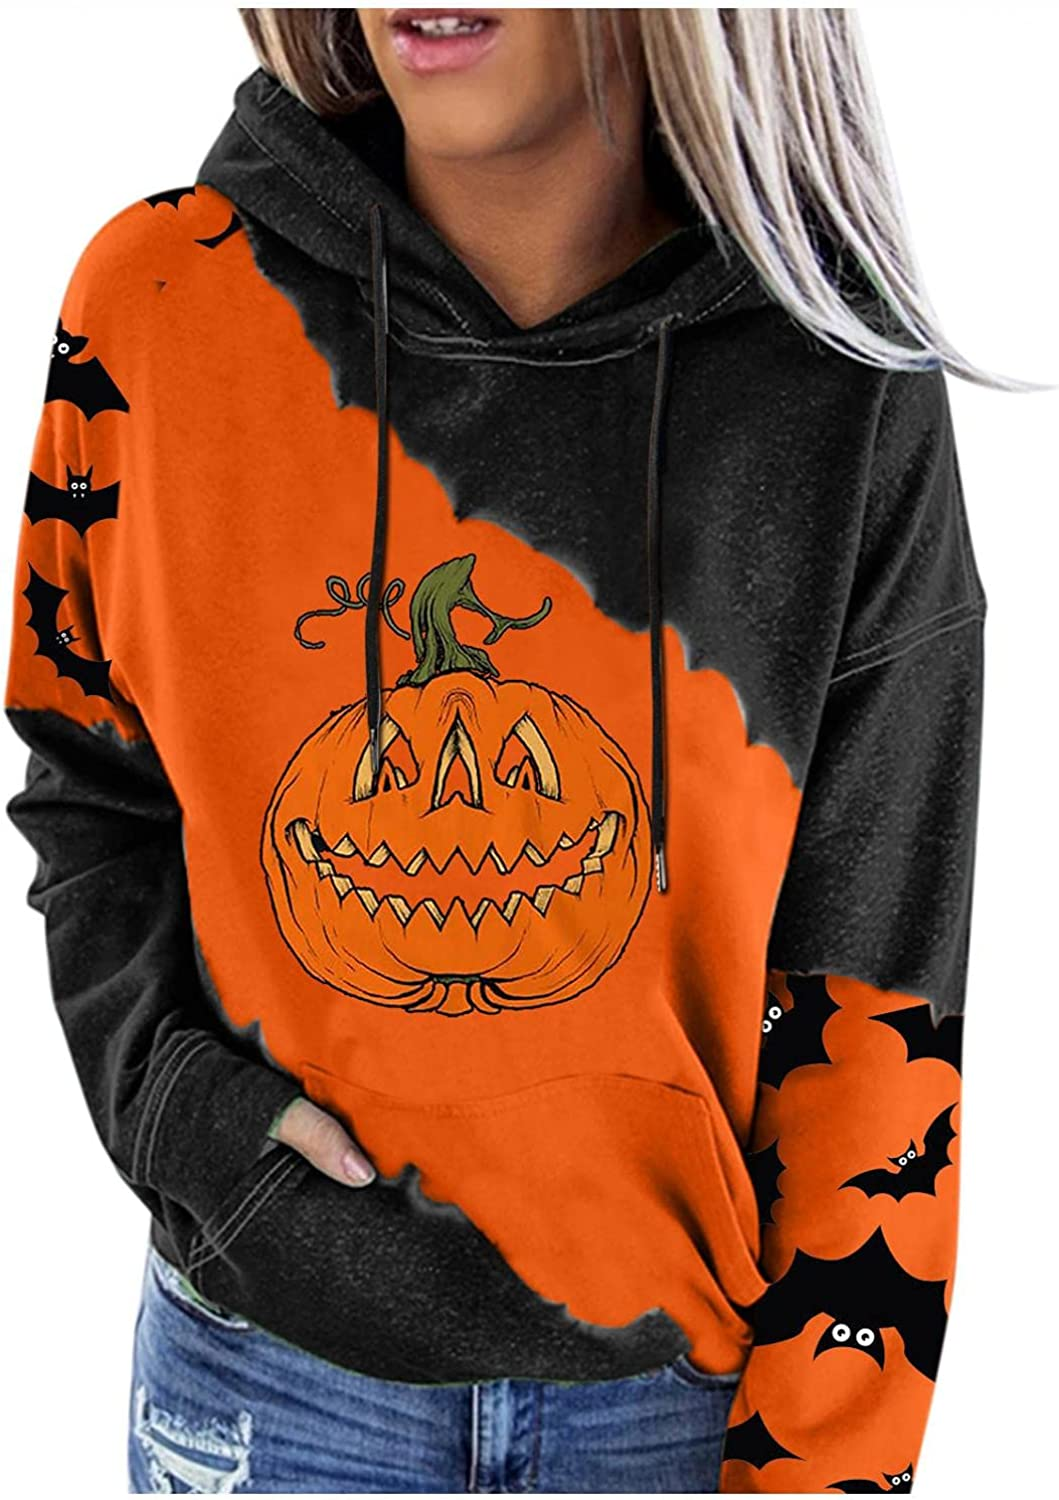 Hoodies for Women Pullover Sweatshirts Lightweight Halloween Printed Sweaters Blouses Button Long Sleeve Drawstring Tops